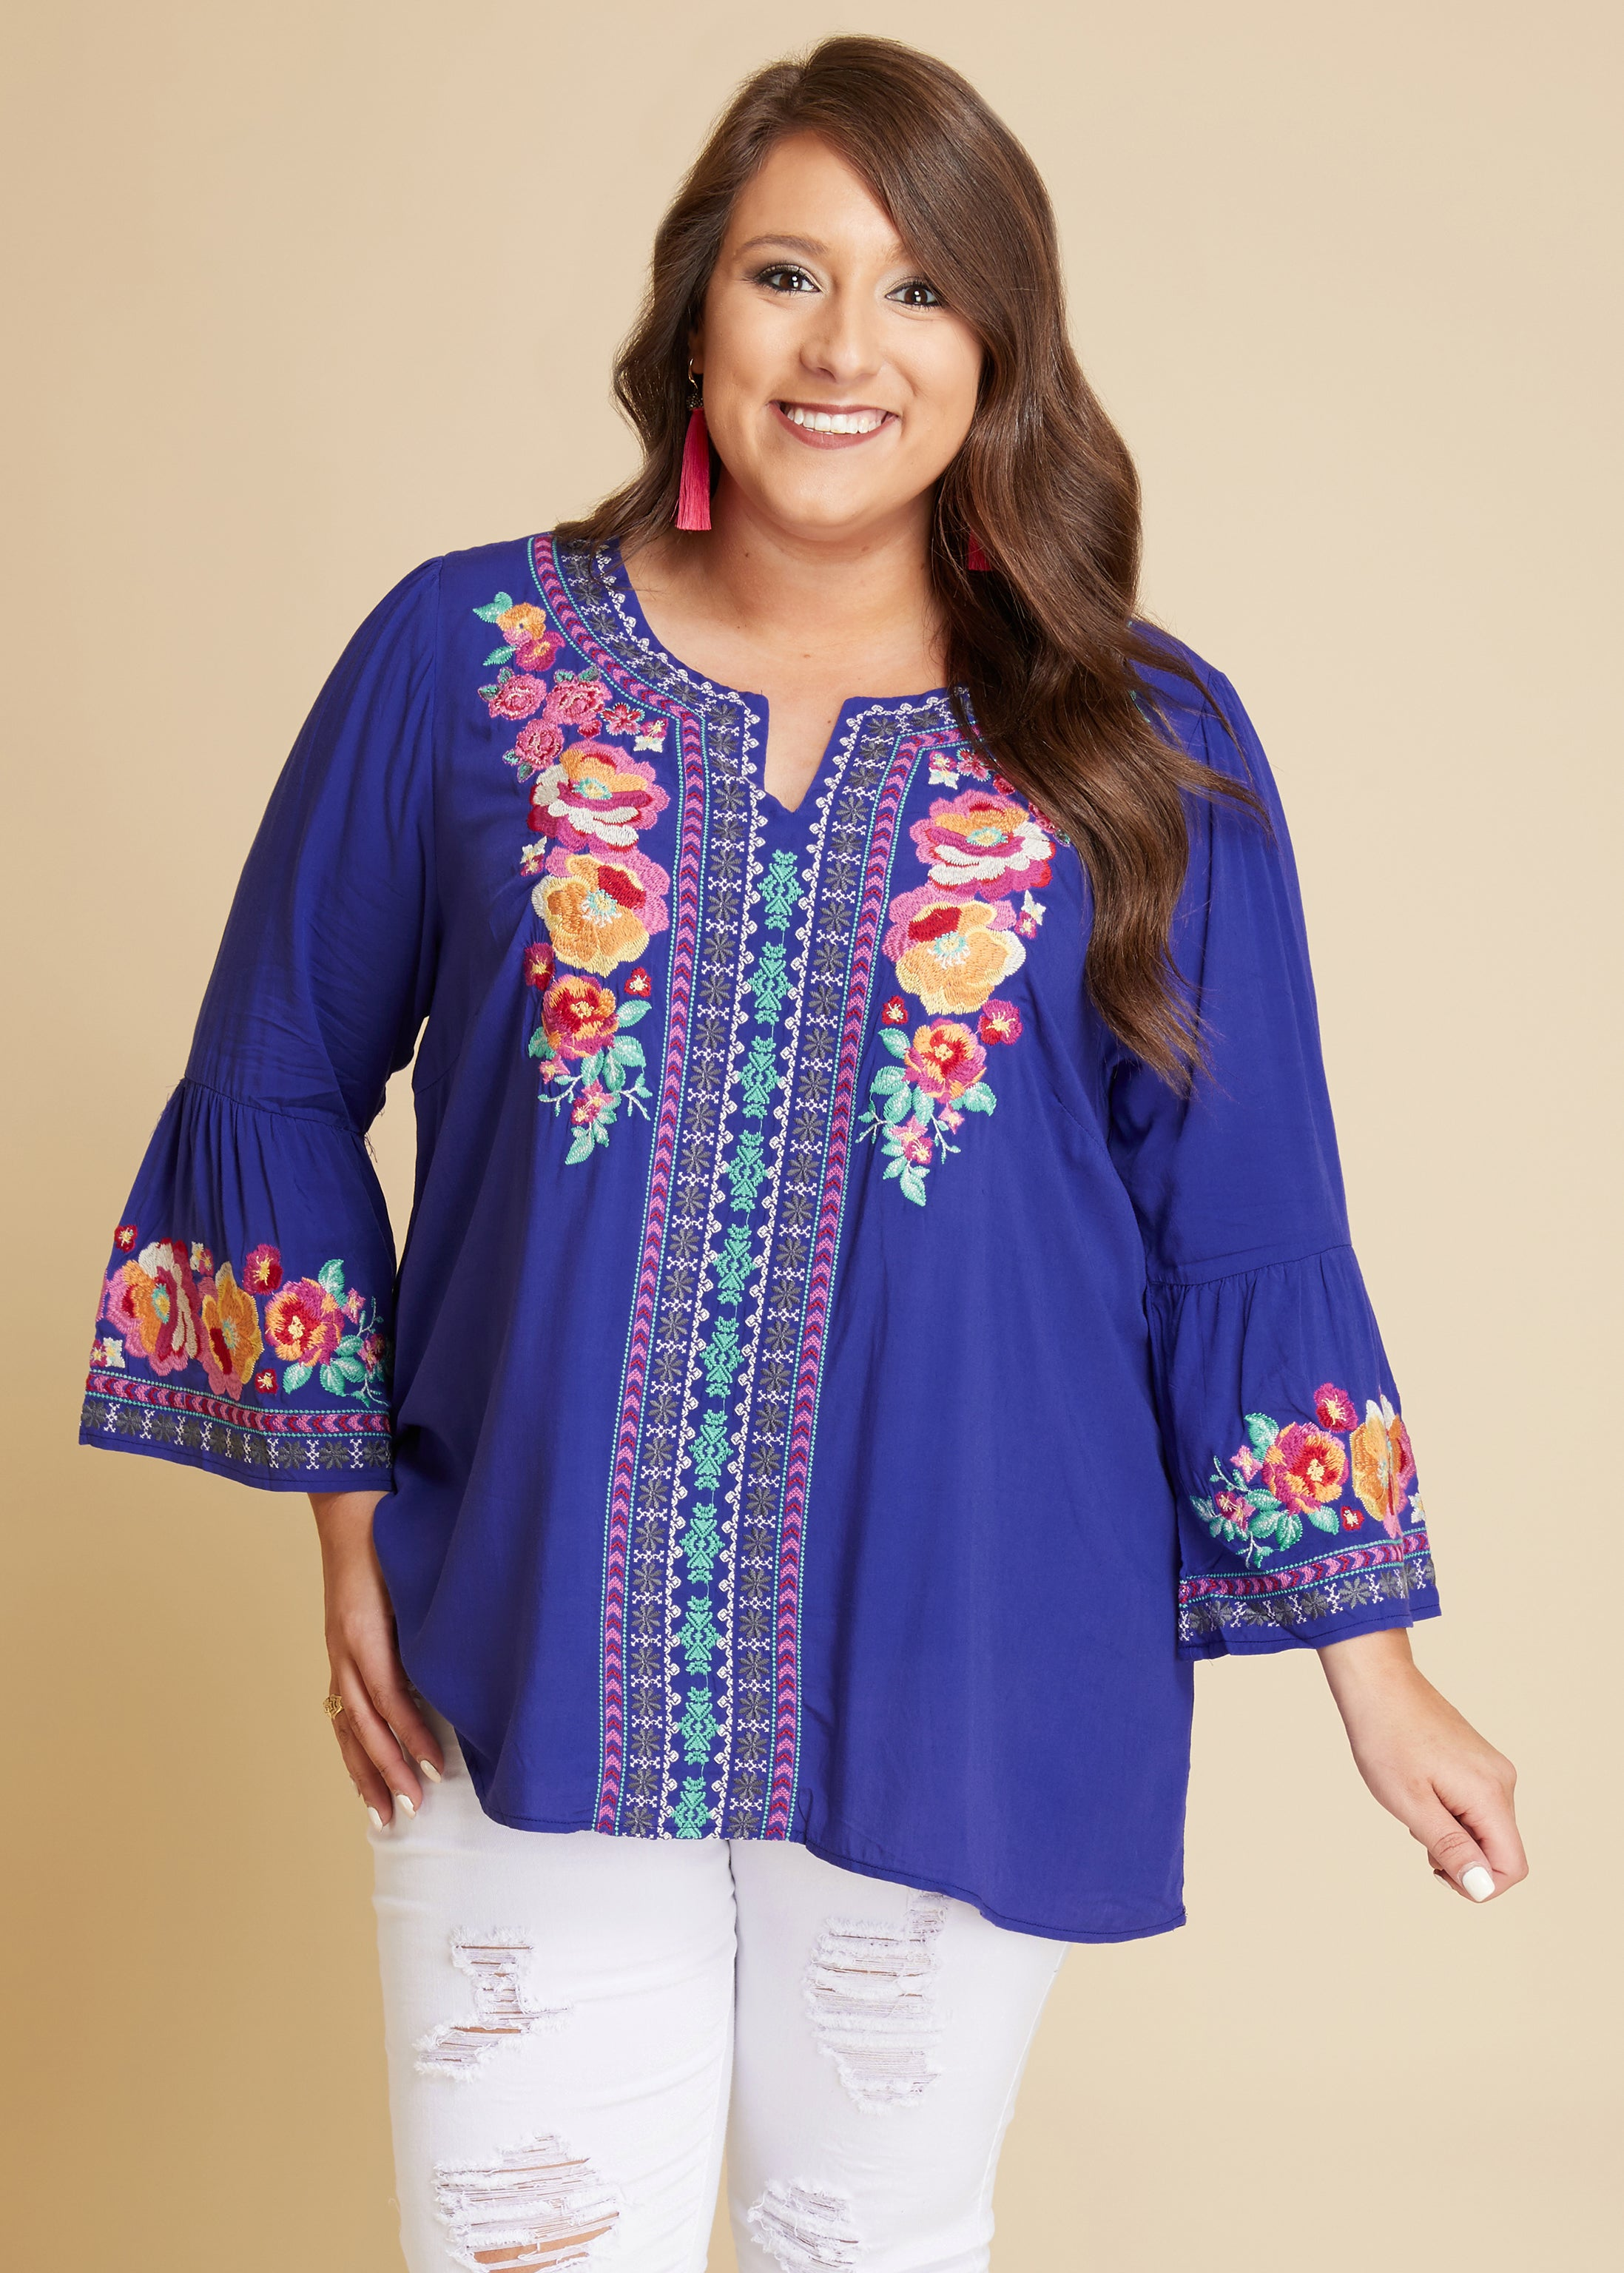 Royal Floral Embroidered Top - FINAL SALE